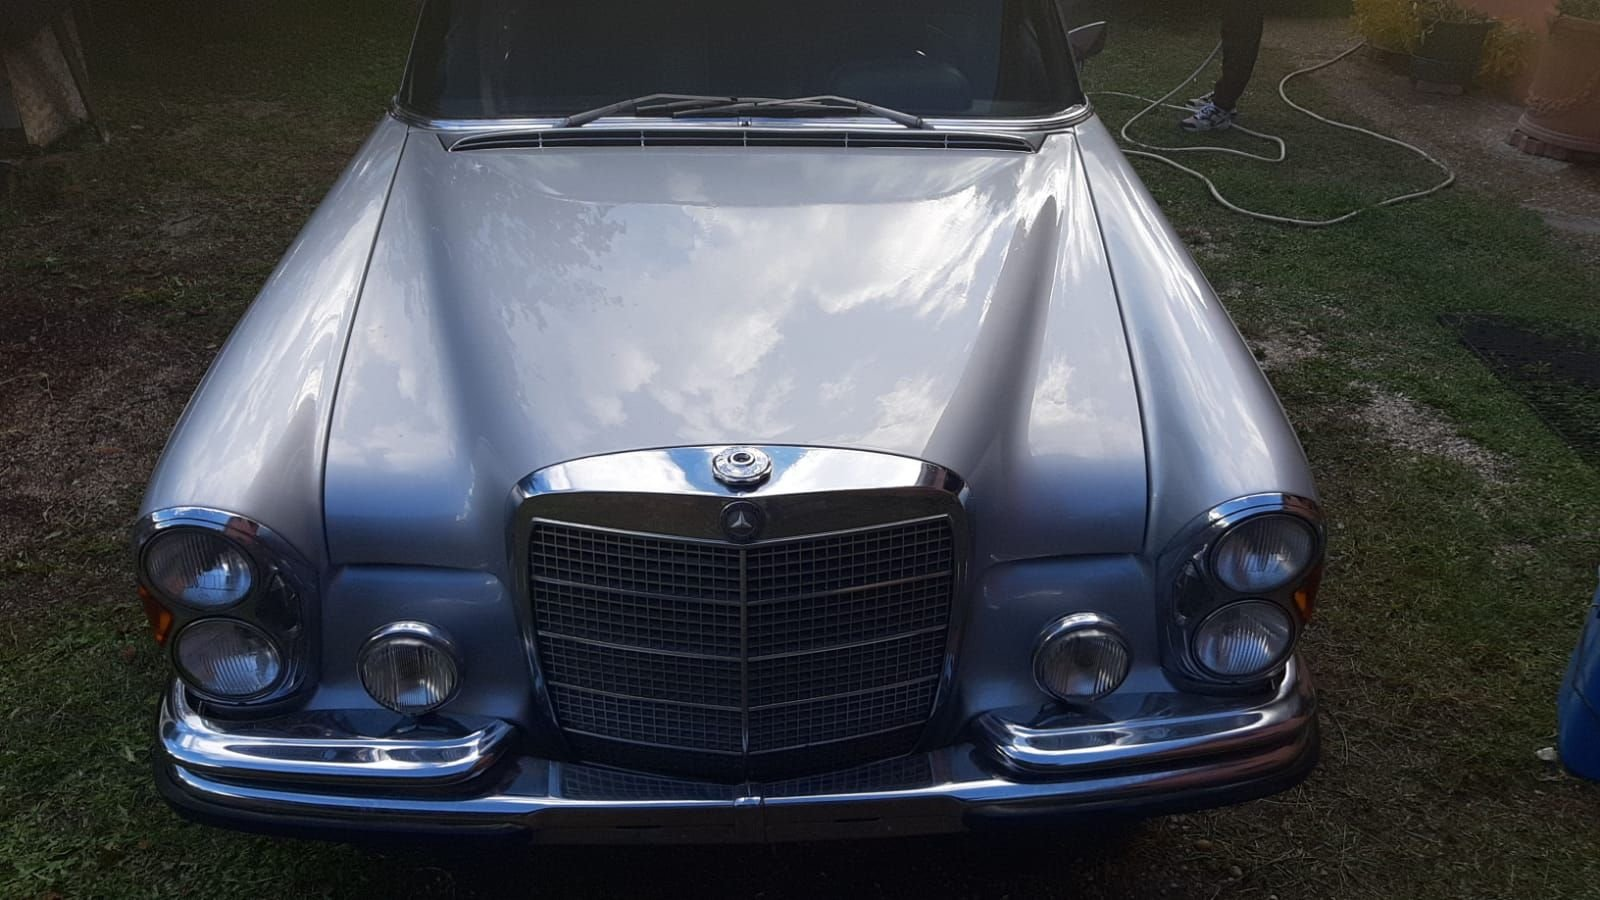 1972 RARE MERCEDES BENZ W108 280 SE  3.5 Saloon LHD For Sale (picture 3 of 12)